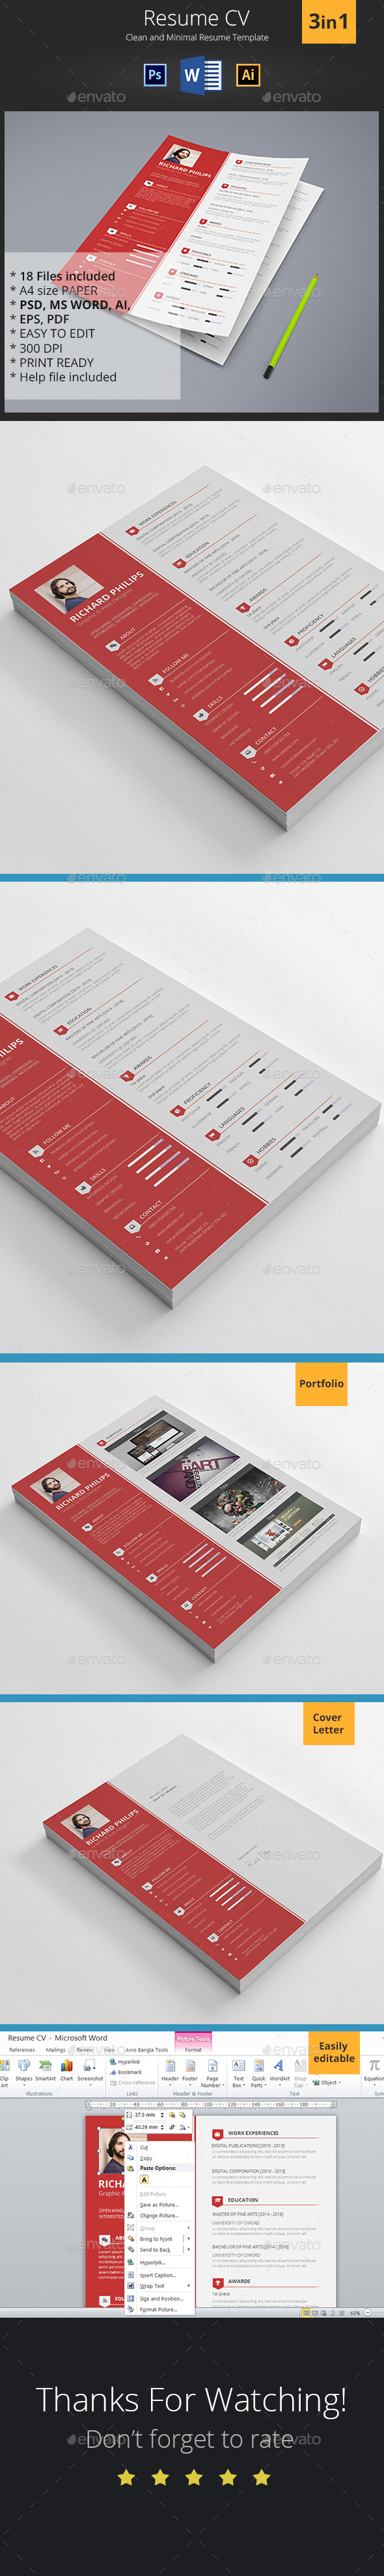 psd resume graphics designs templates from graphicriver